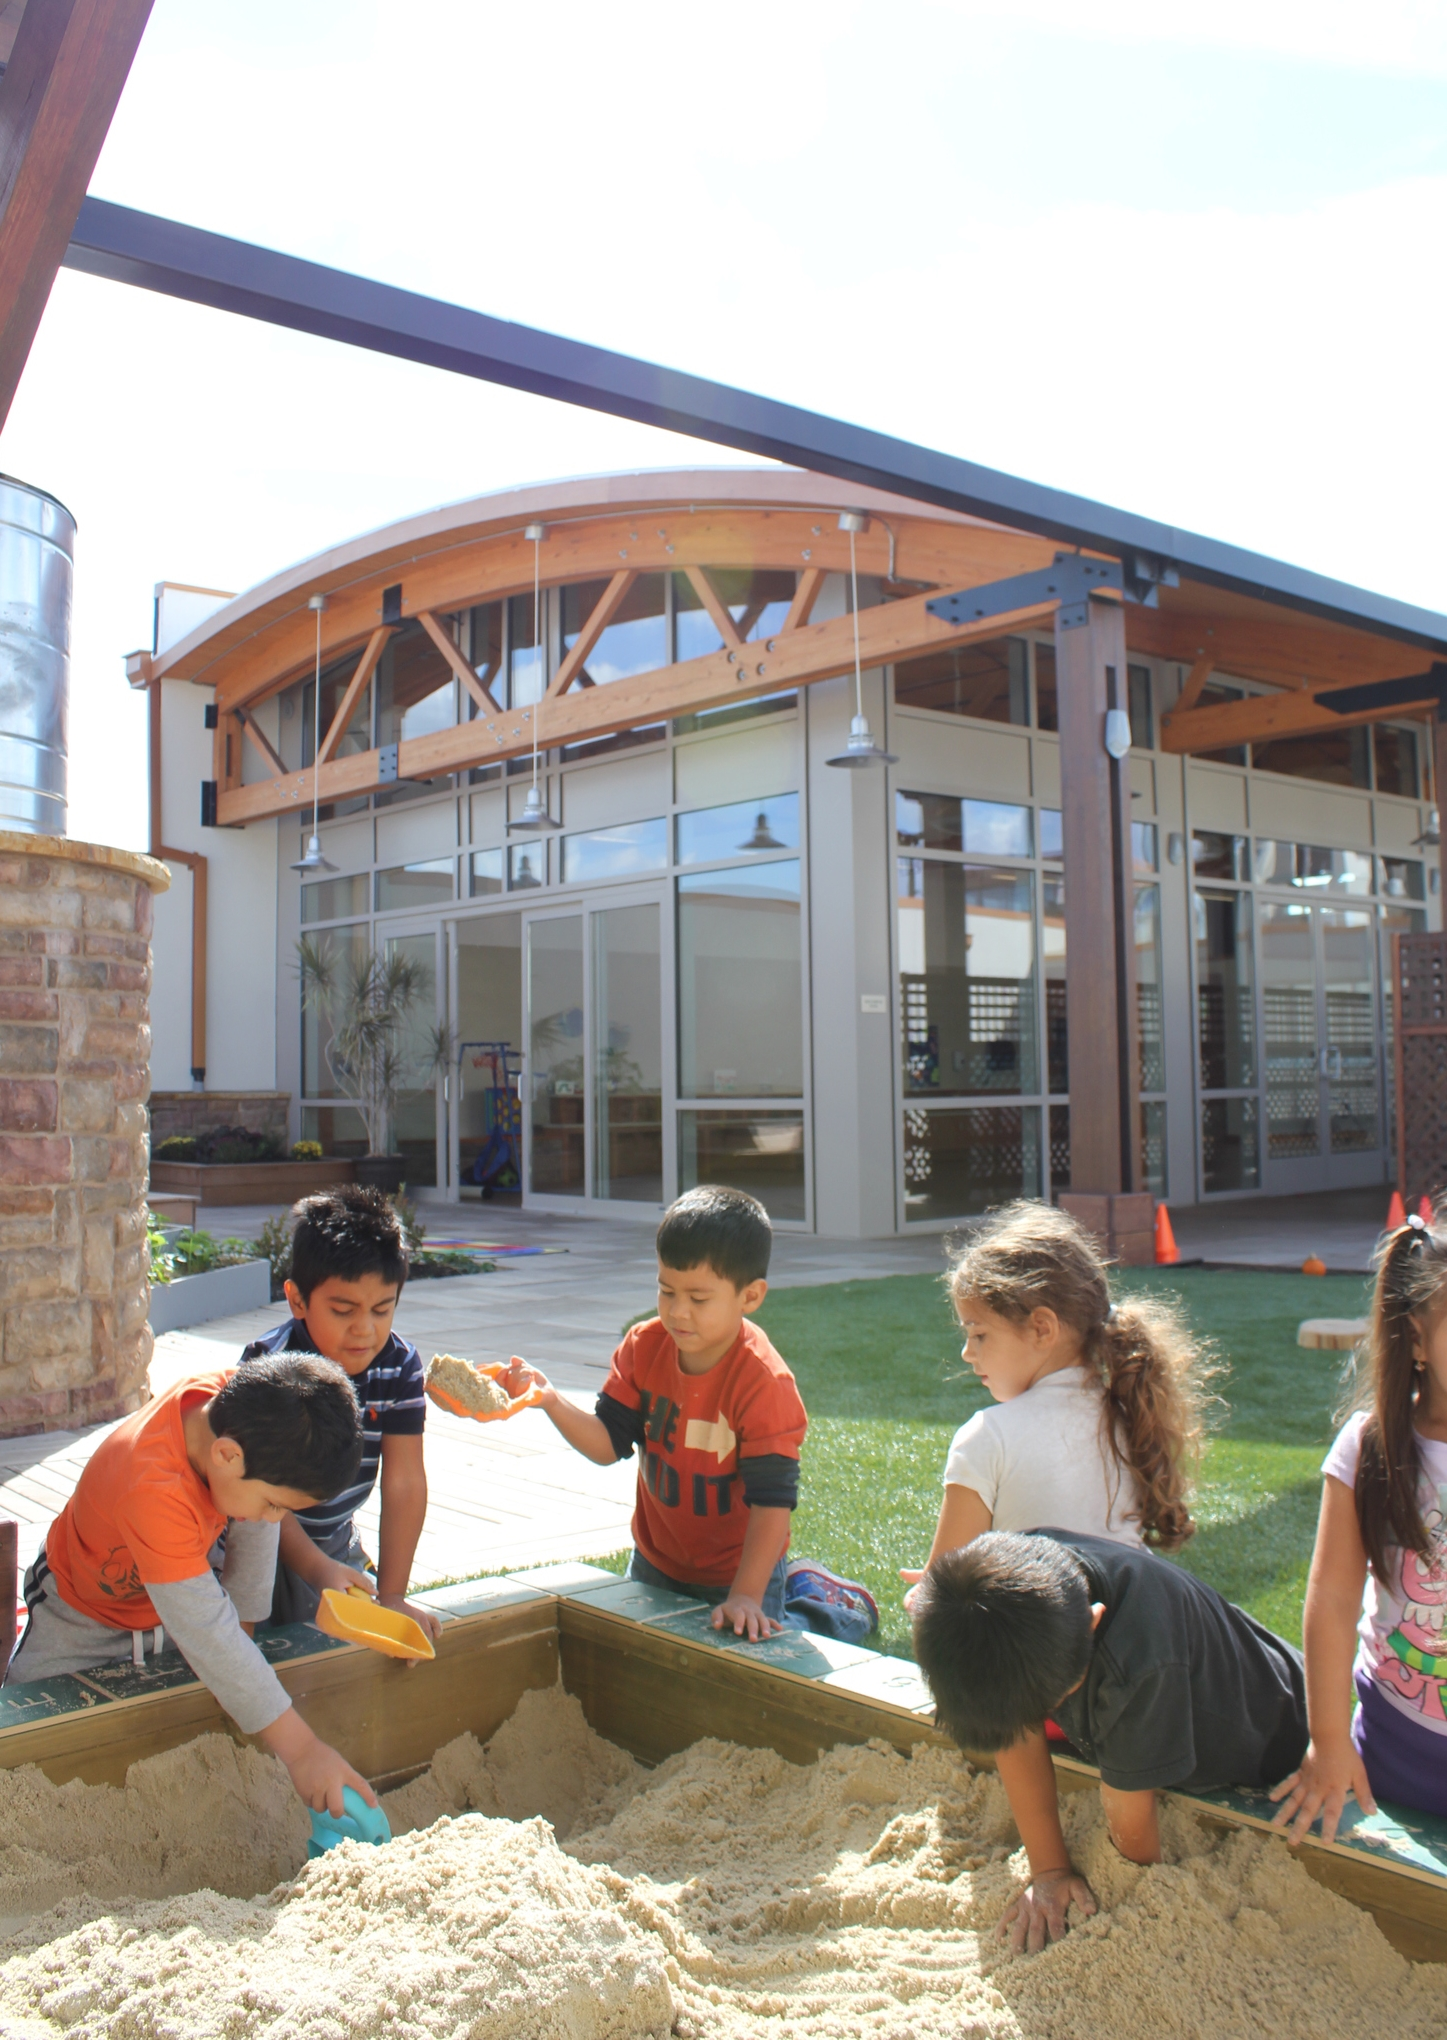 Preschoolers enjoying the sandbox on the rooftop playground, Photo by Sean Gray